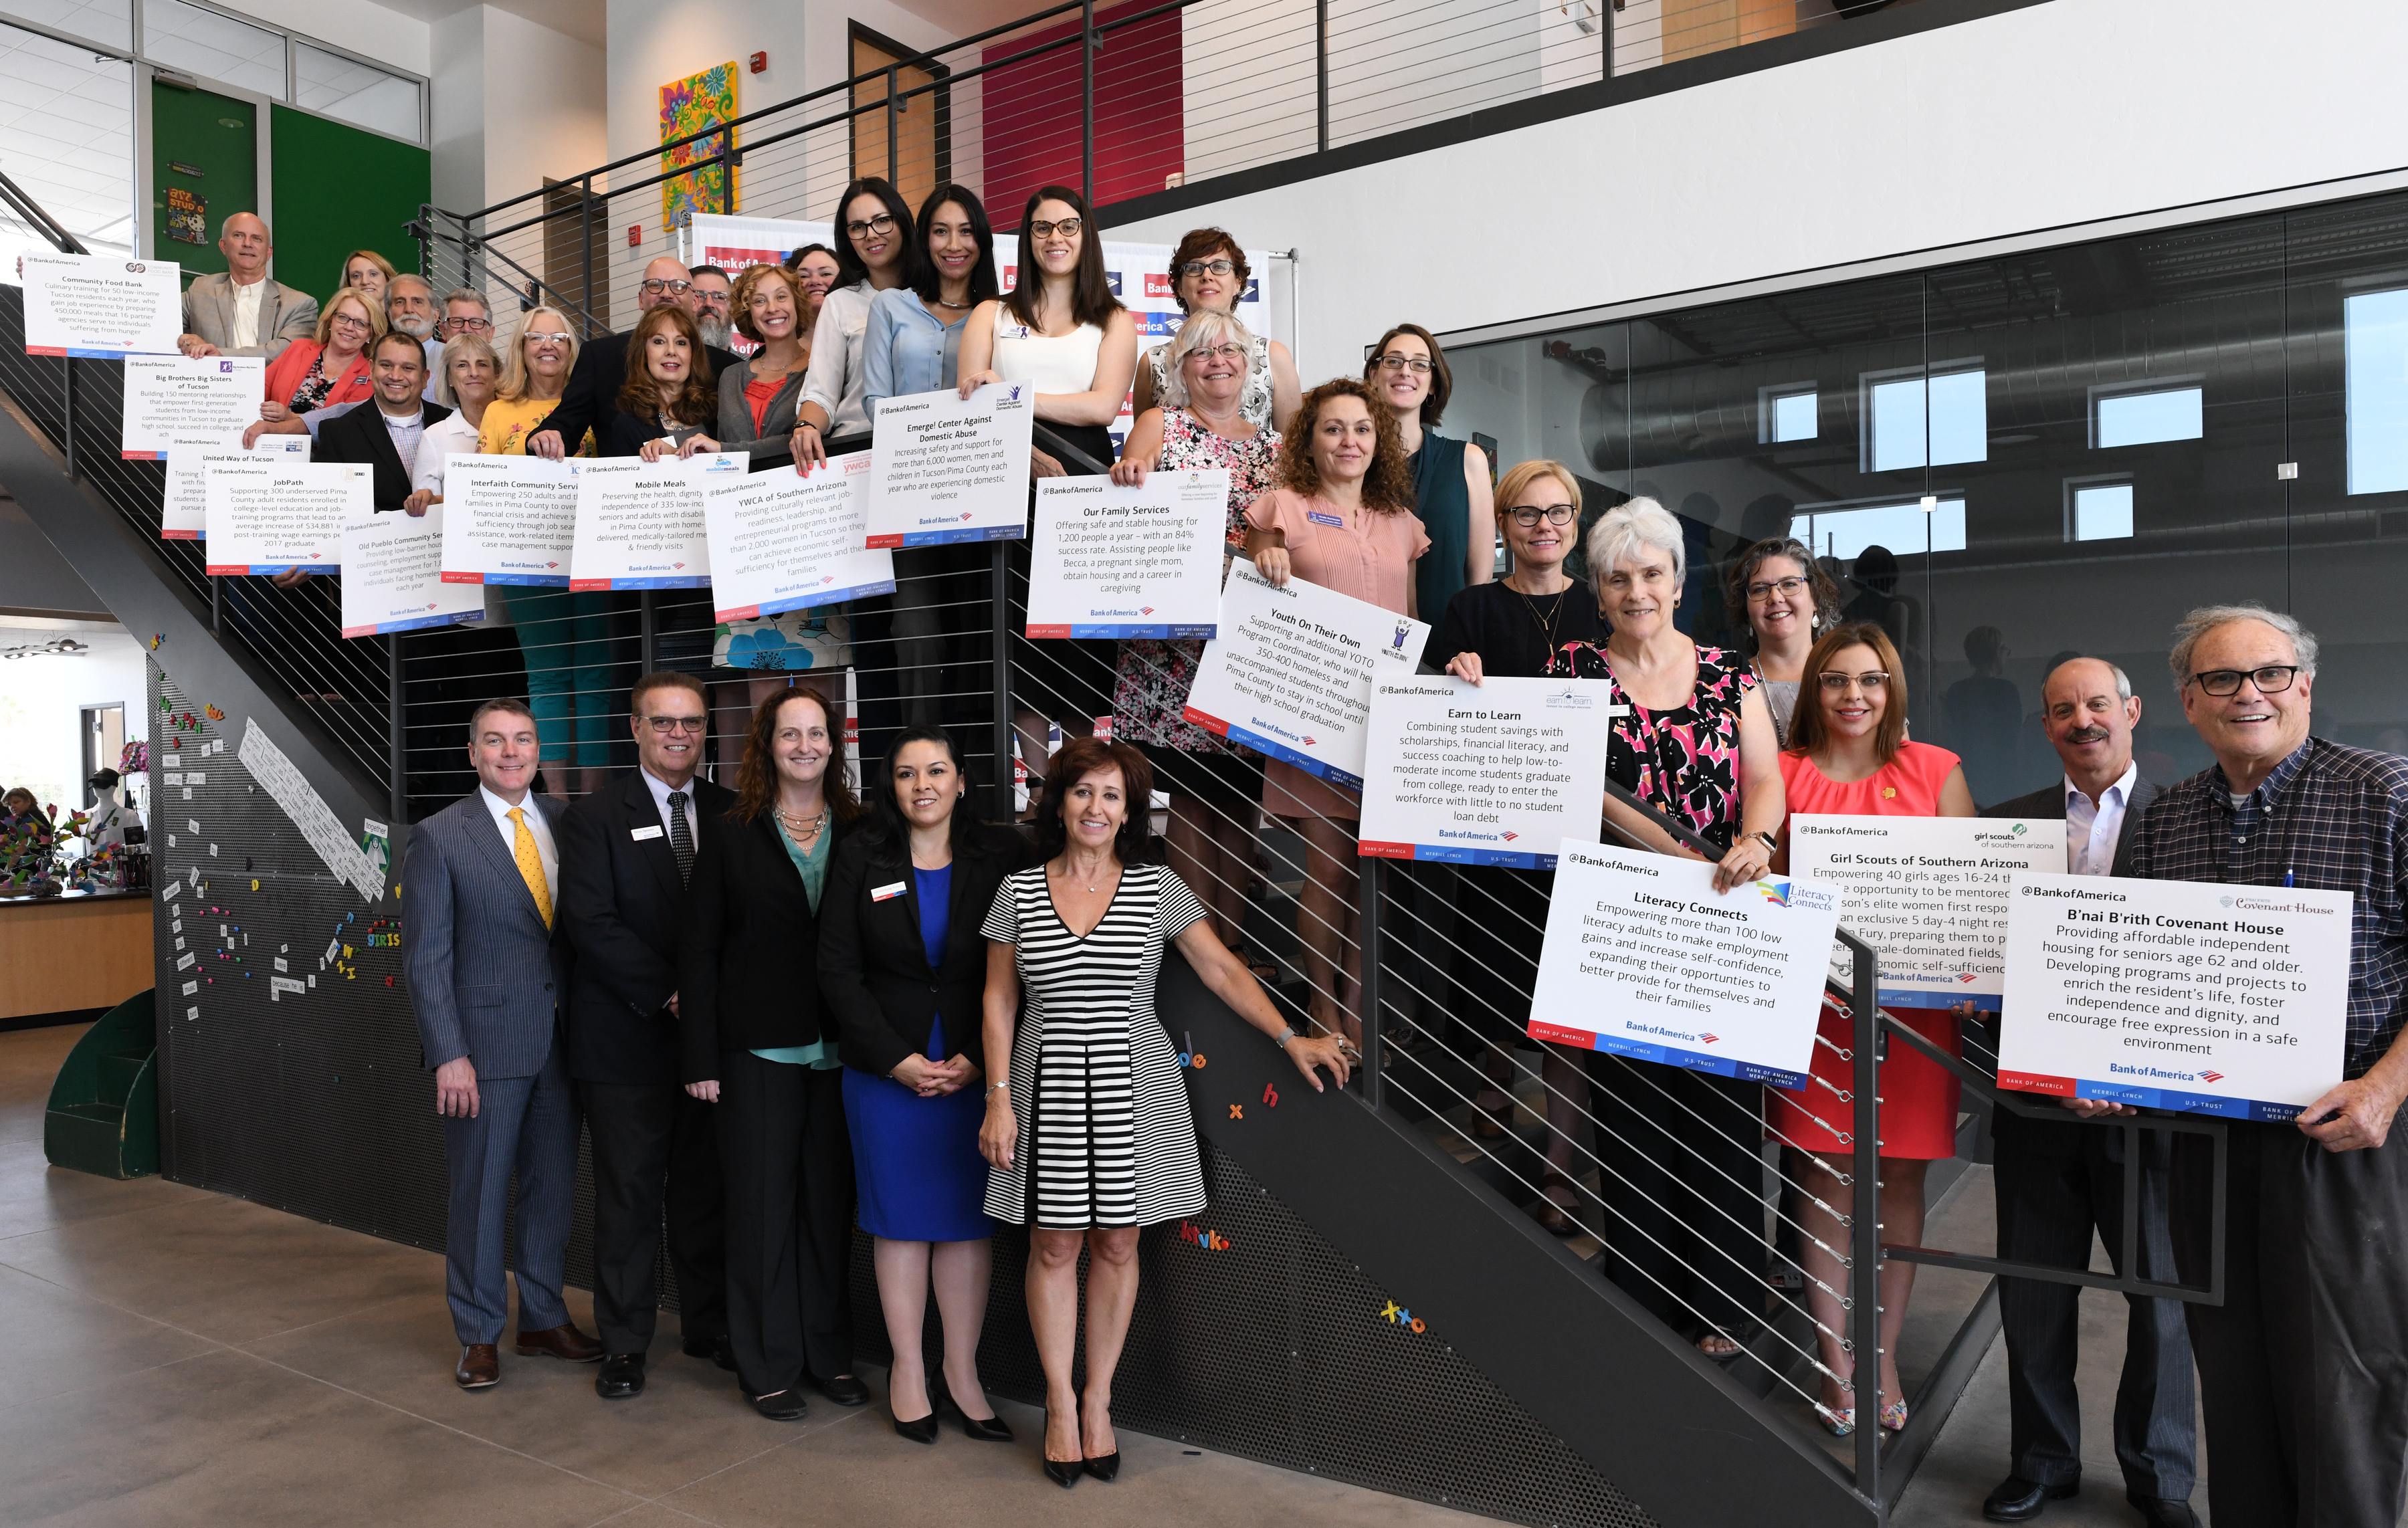 Bank of America Awards $12,500 to JobPath To Address Workforce Readiness